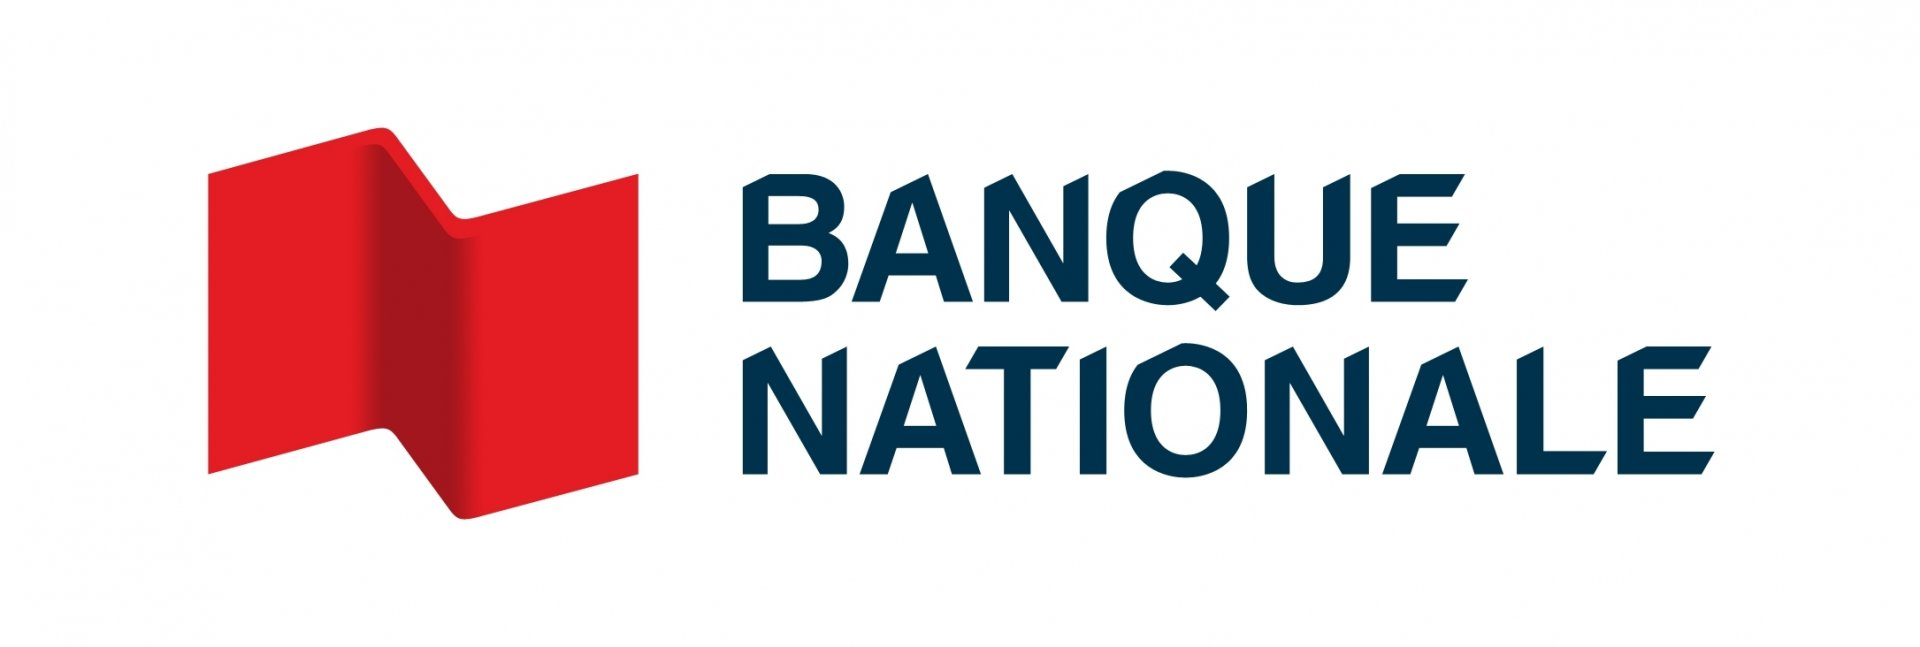 Banque nationale 2016